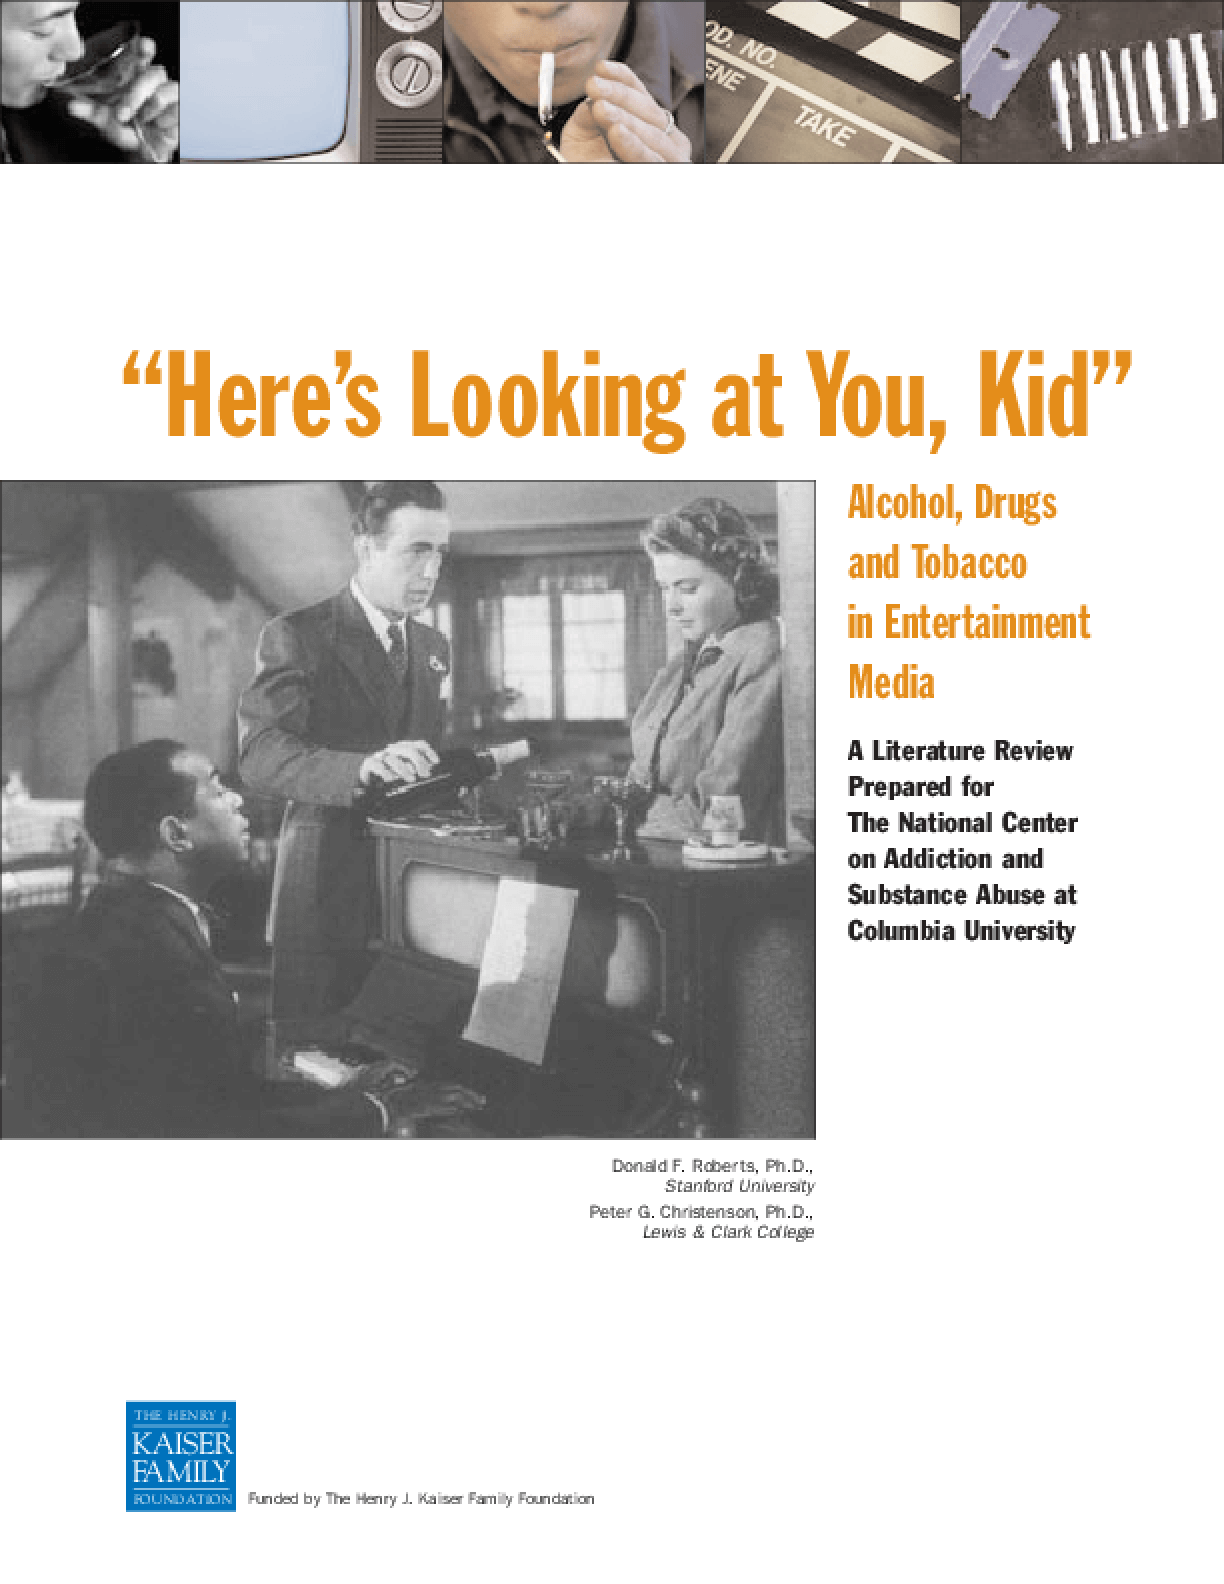 """Here's Looking at You, Kid"": Alcohol, Tobacco and Drugs in Entertainment Media"